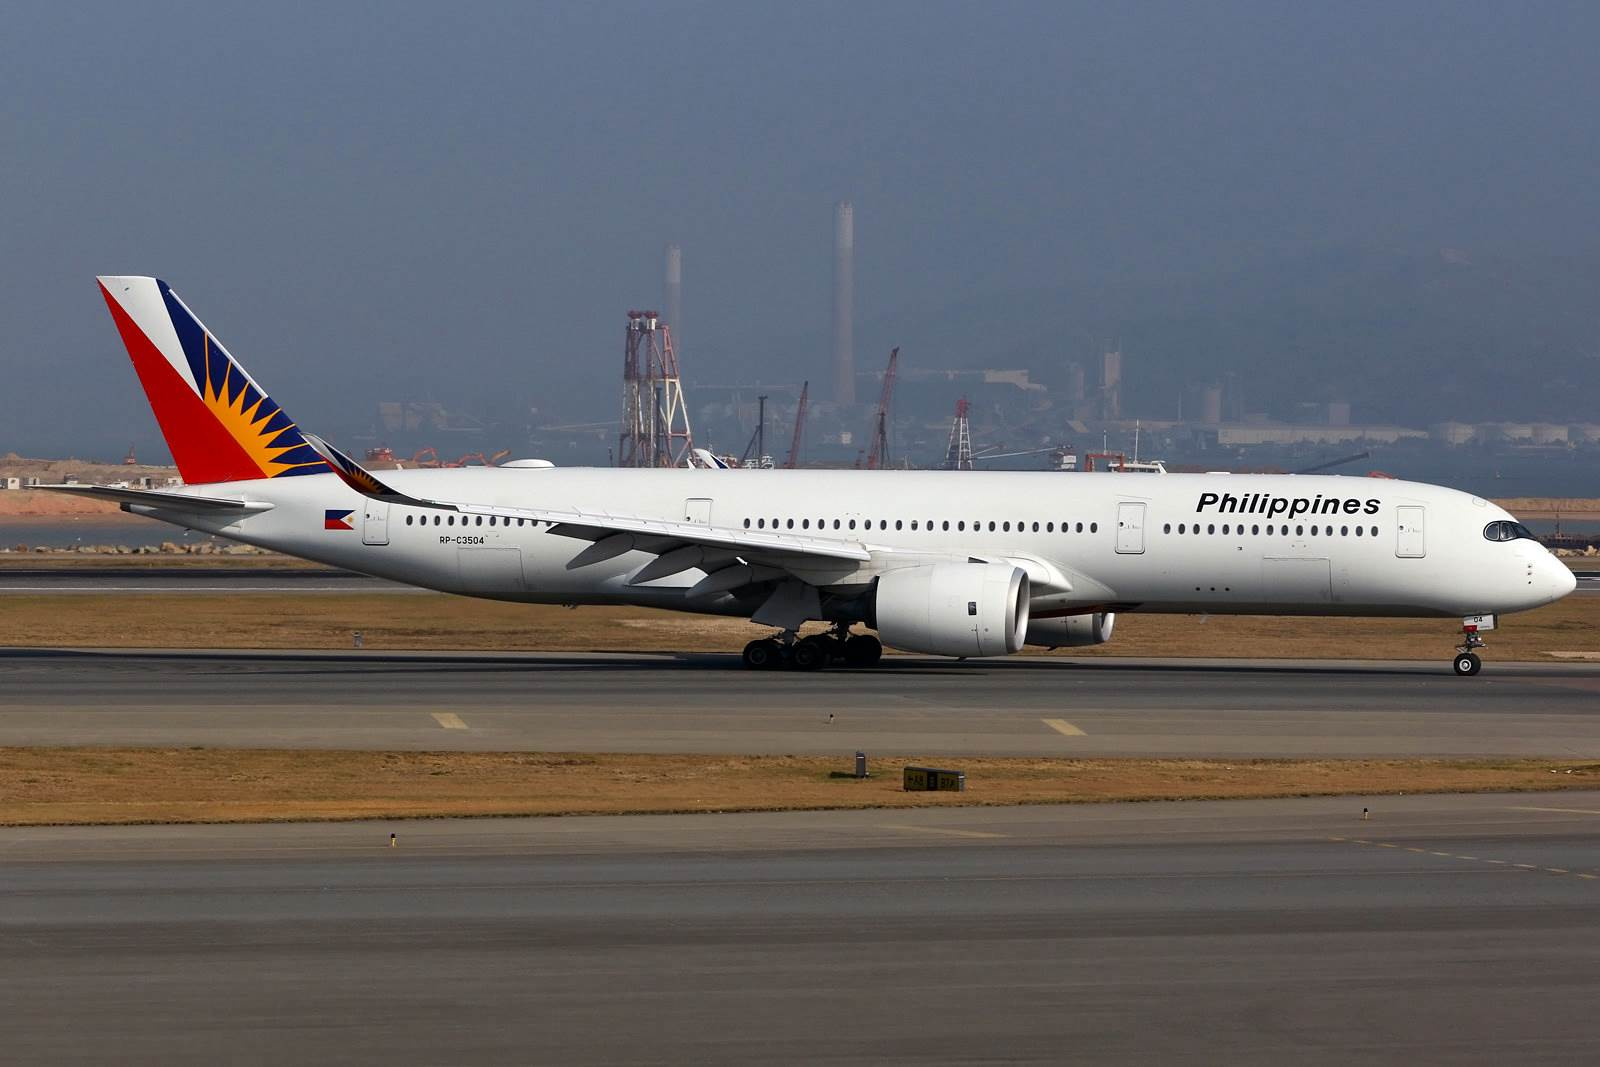 Philippine Airlines in Hong Kong (Foto Flickr.com Dennis Lau)